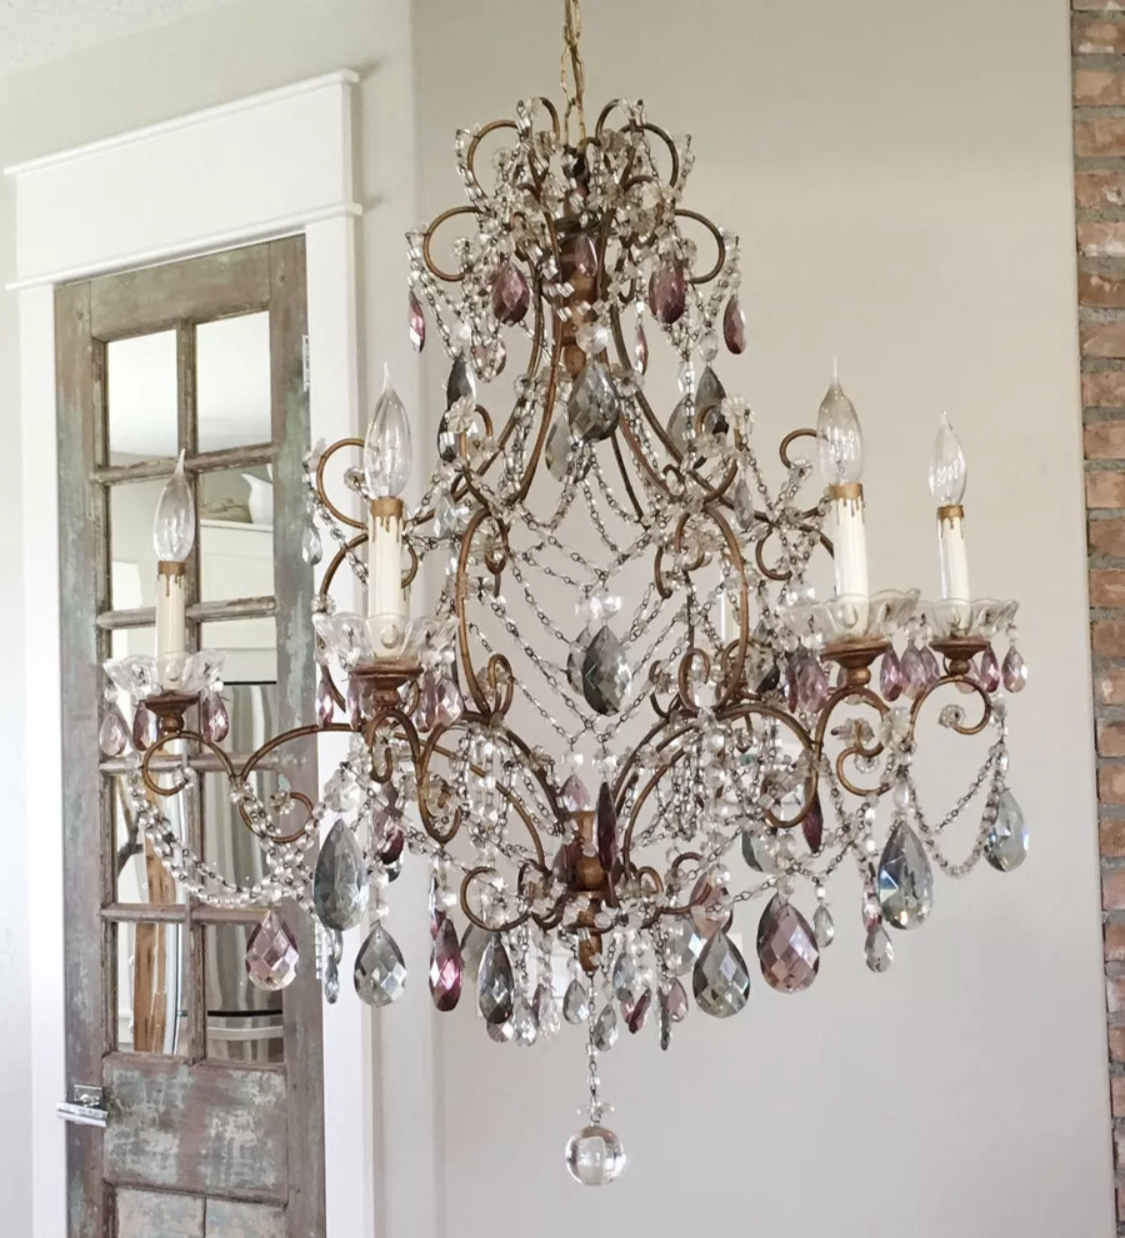 Amethyst & Smoke Antique Xlrg Italian Beaded Chandelier